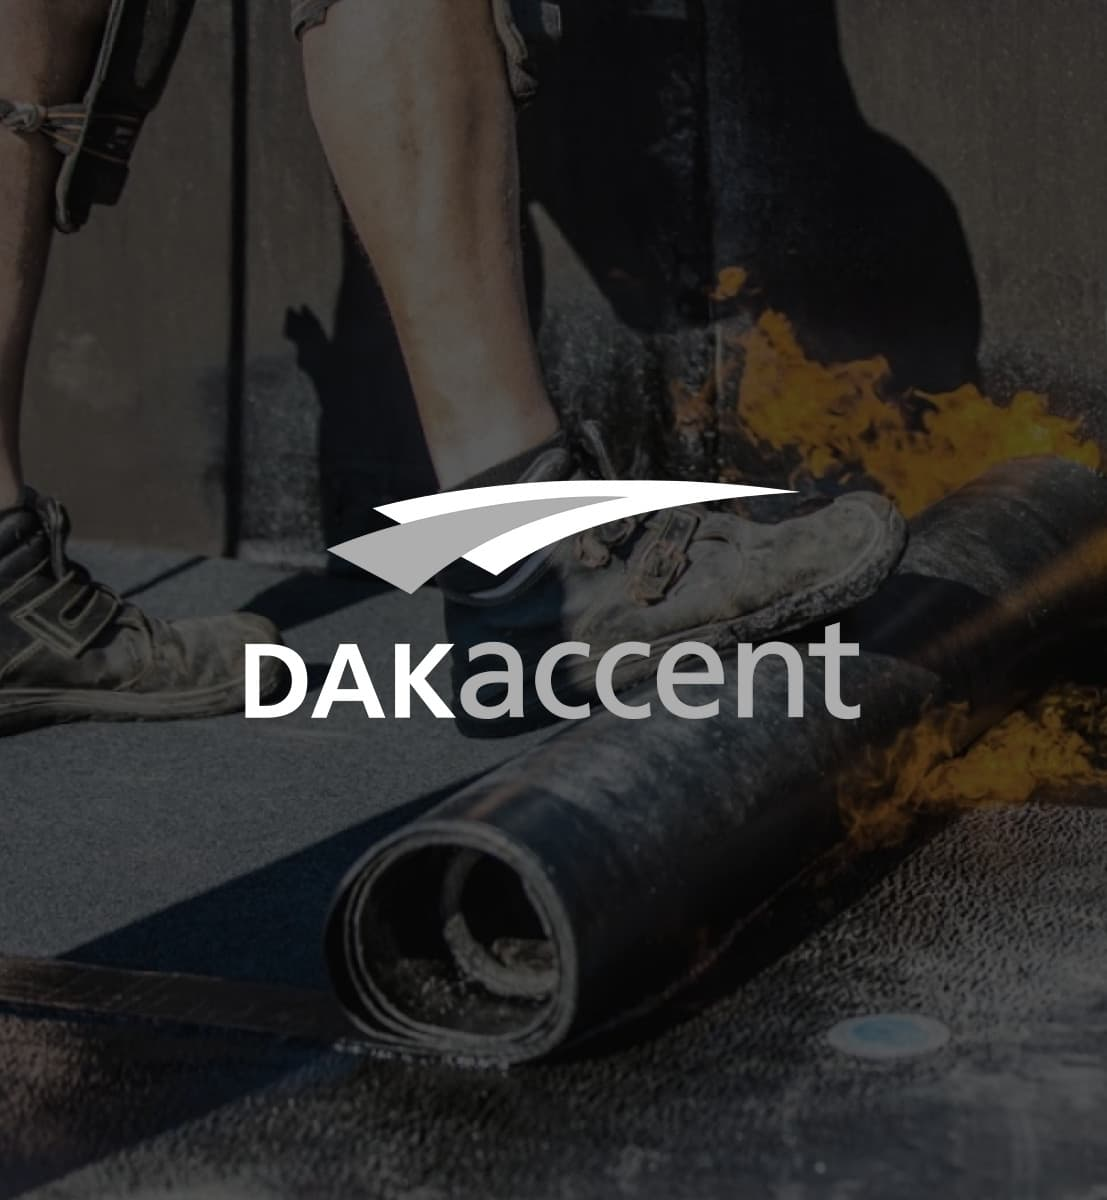 DEX international M&A advised the shareholders of Dakaccent on the management participation